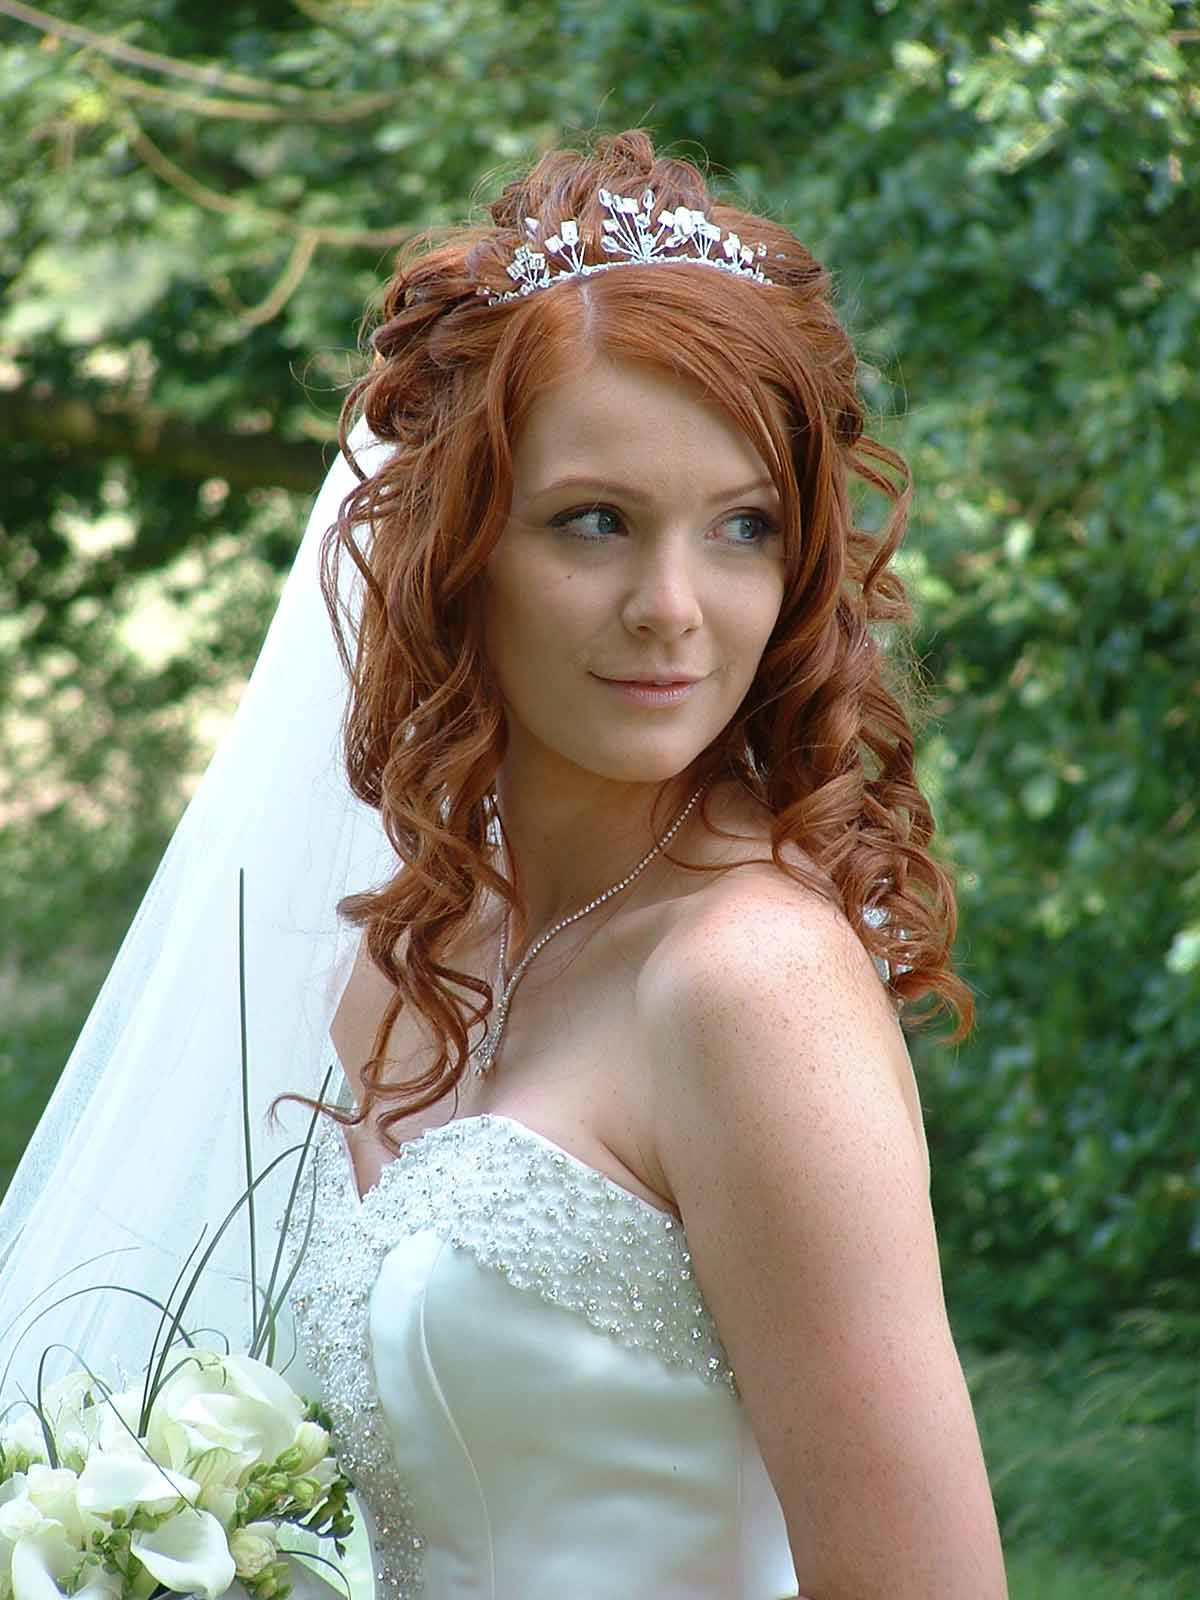 Best ideas about Wedding Curly Hairstyles . Save or Pin Best Hairstyles 2015 Now.